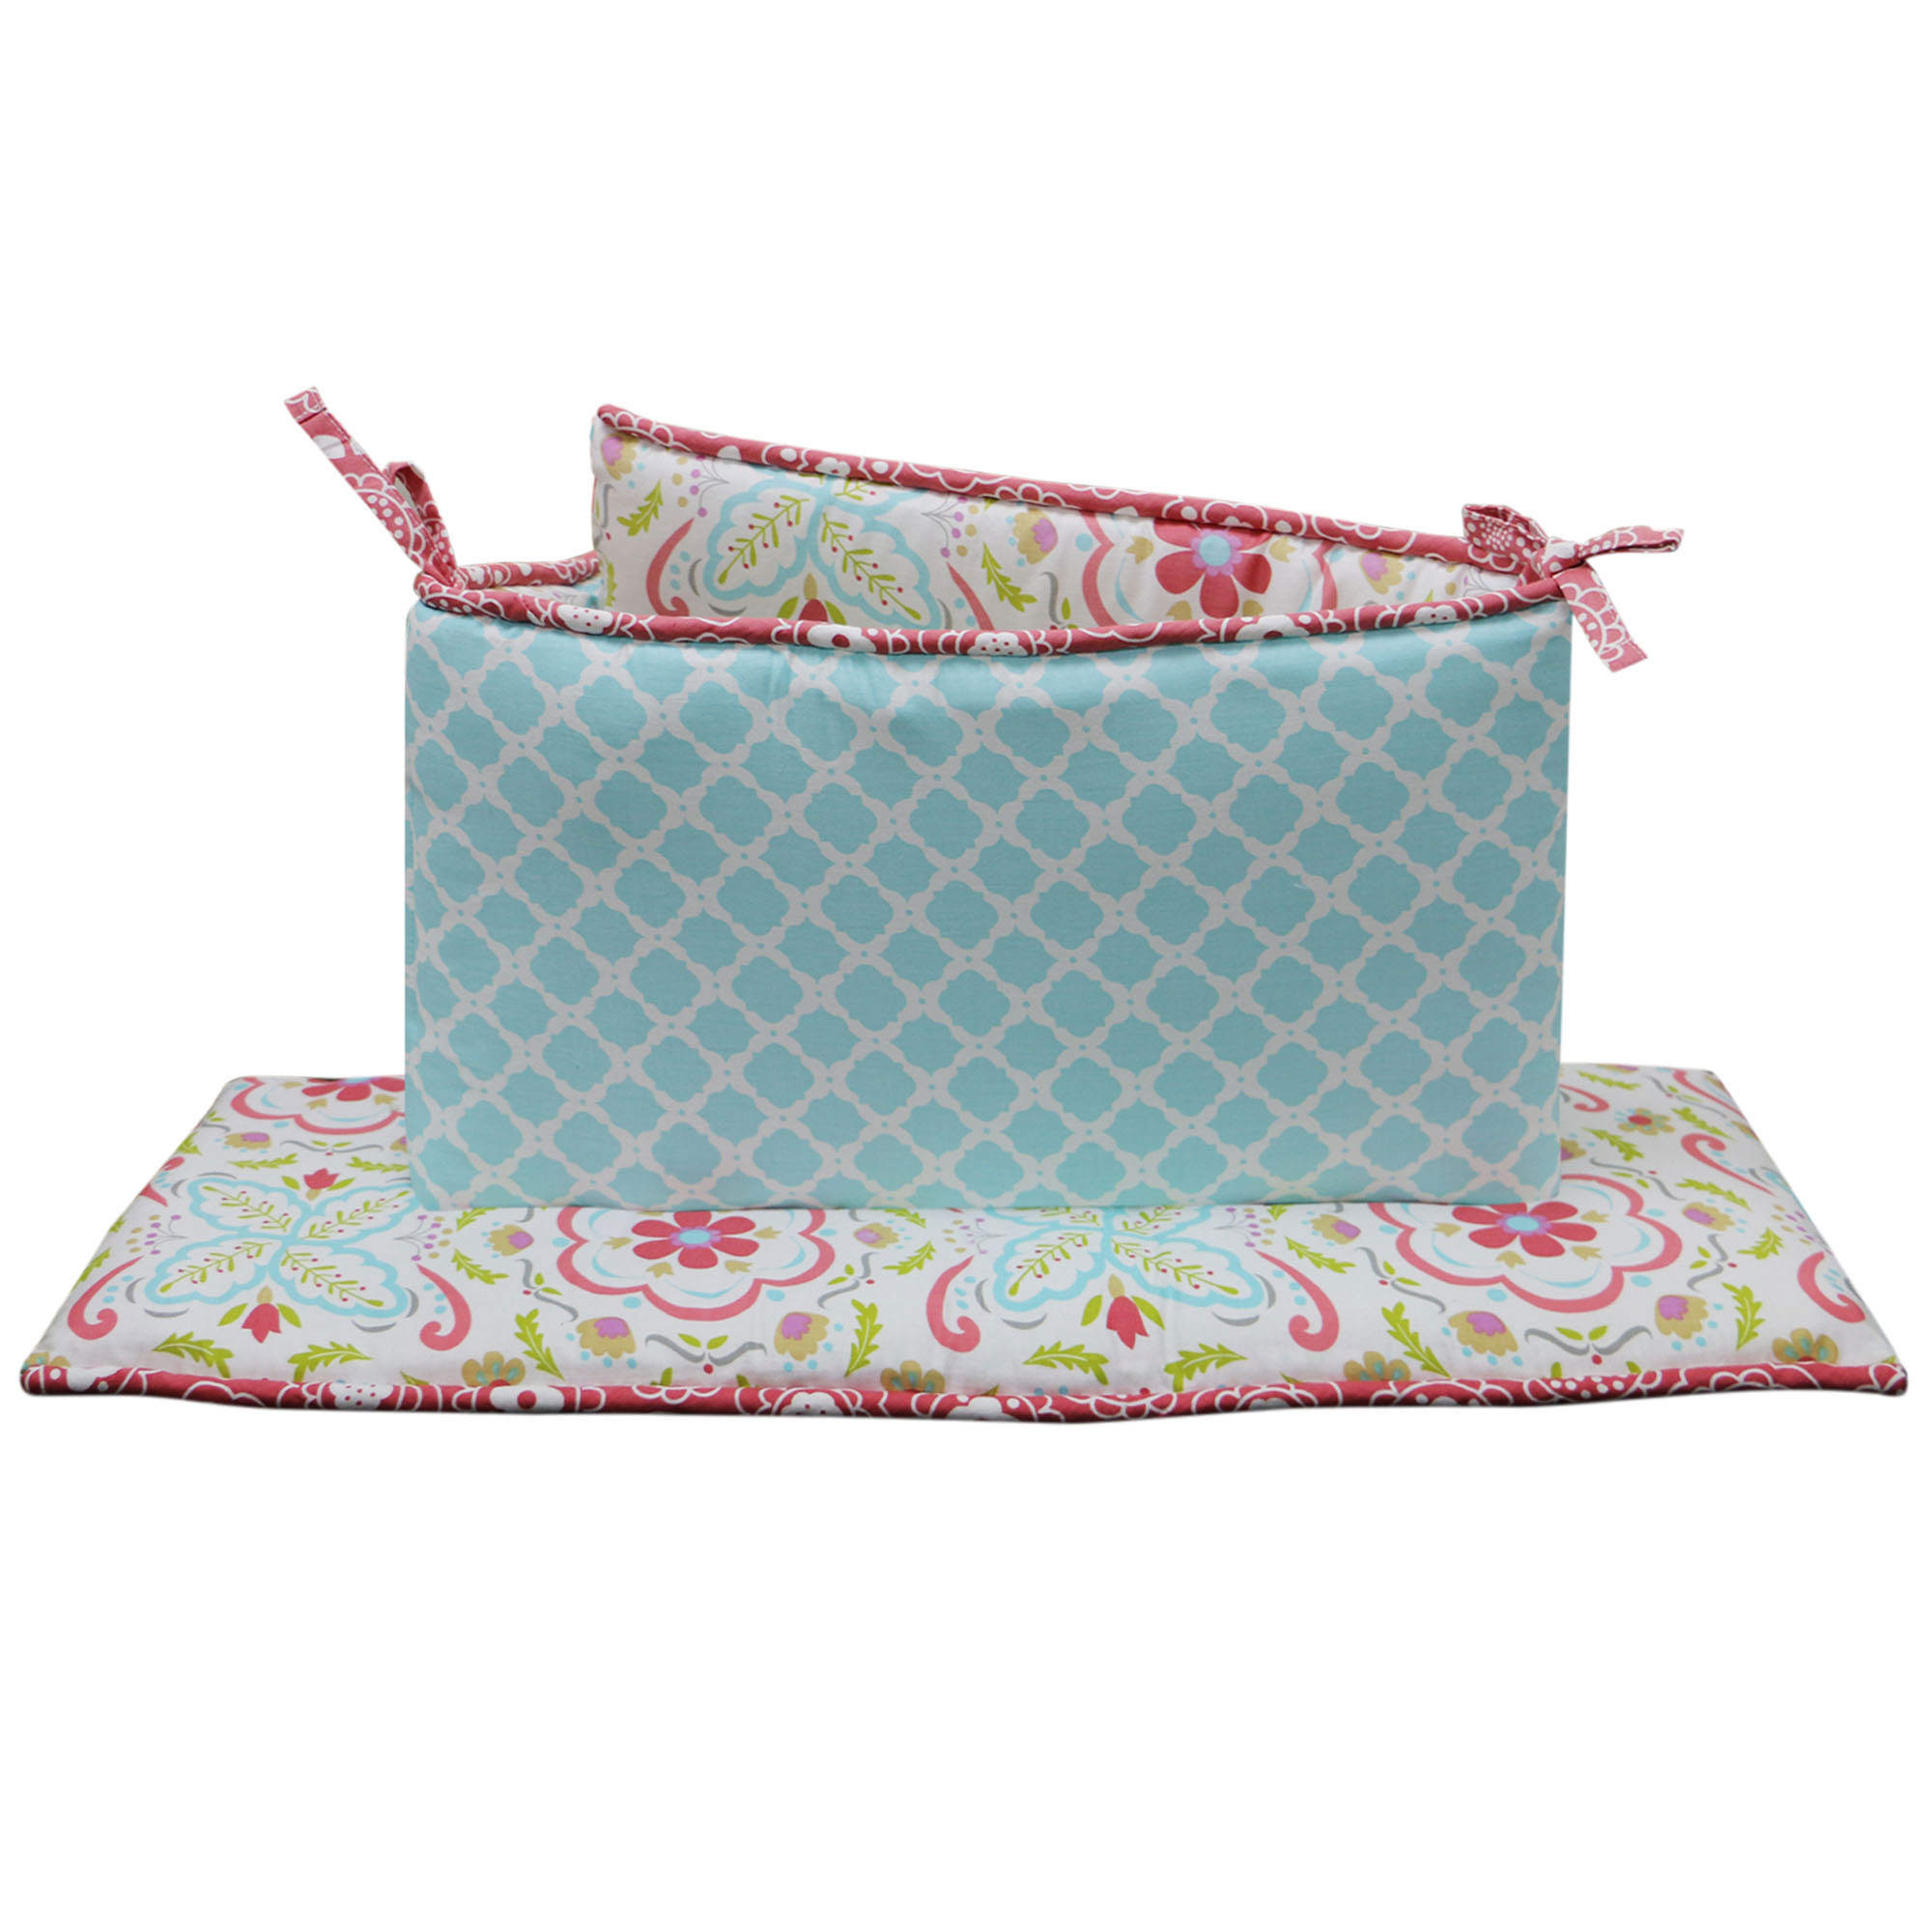 The Peanut Shell Baby Girl Crib Bumper - Coral and Aqua - Mila Bumper